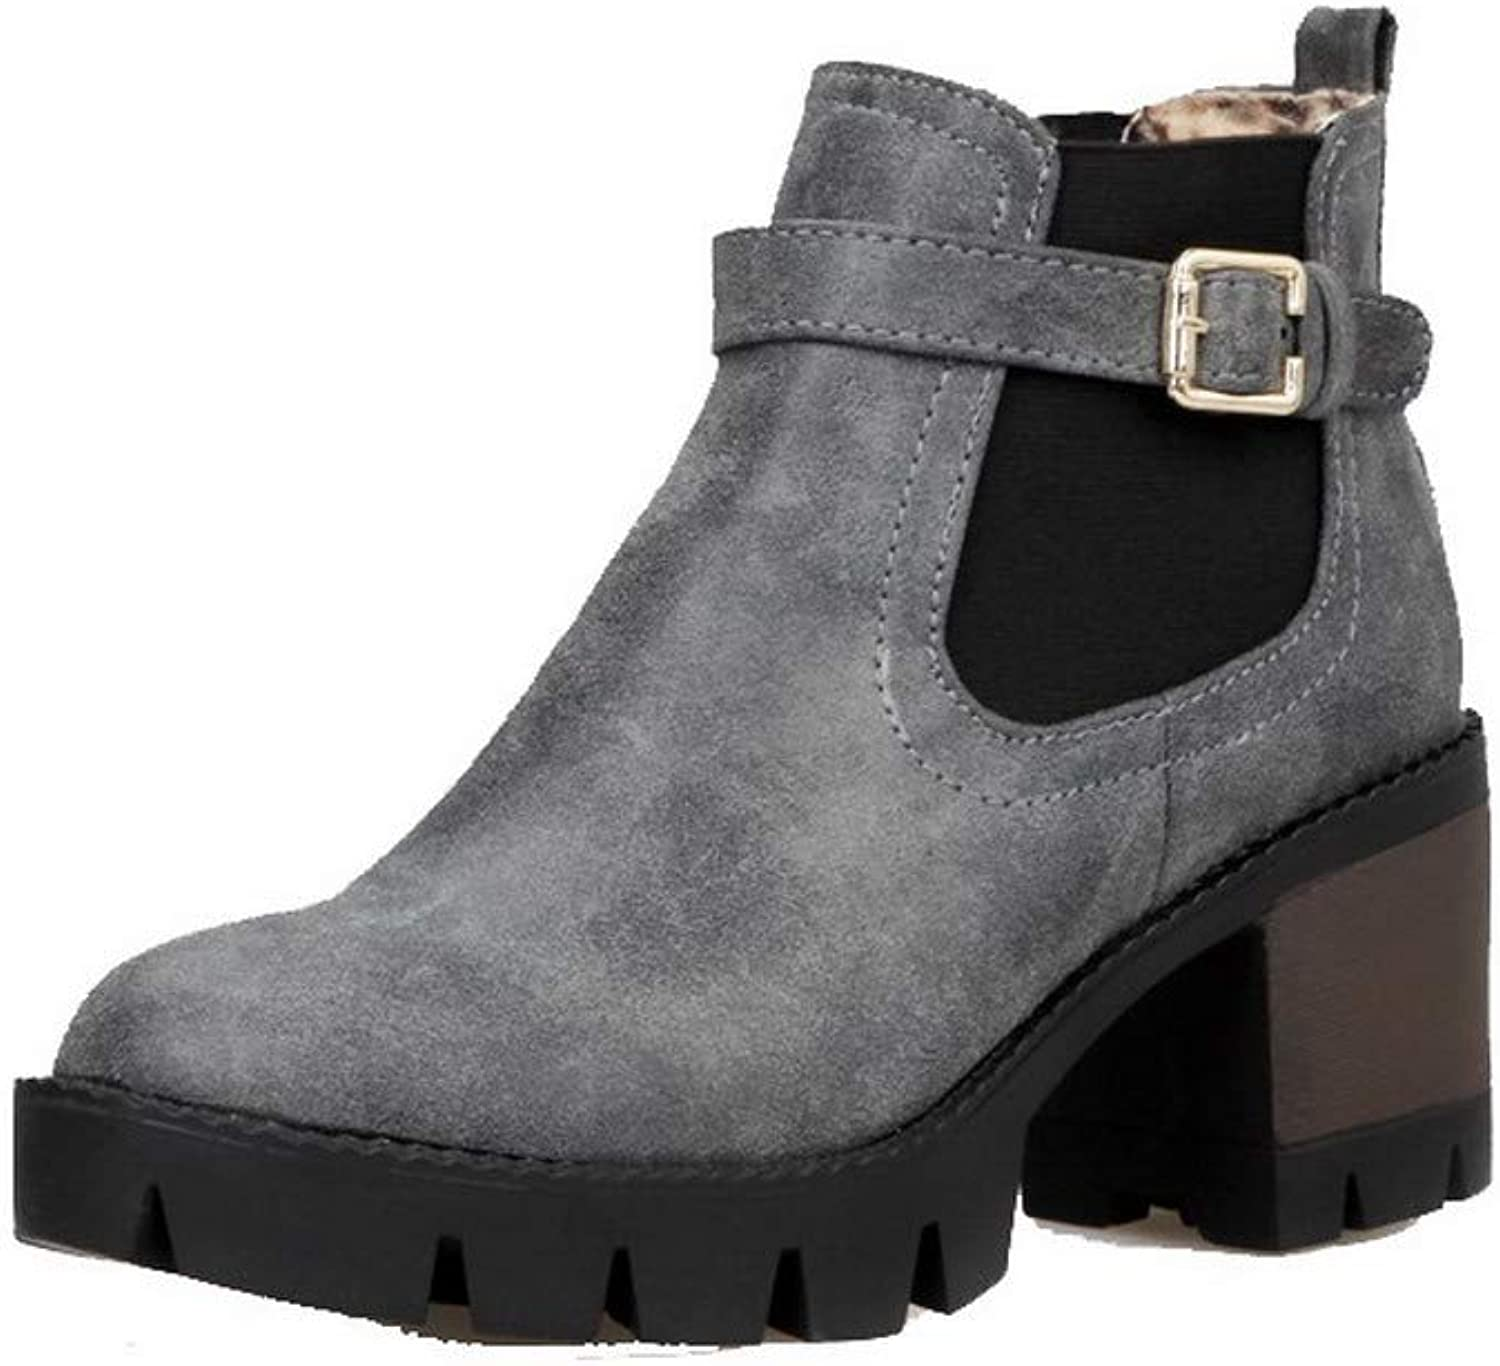 WeenFashion Women's Low-Top Pull-On Pu Kitten-Heels Closed-Toe Boots, AMGXX124951